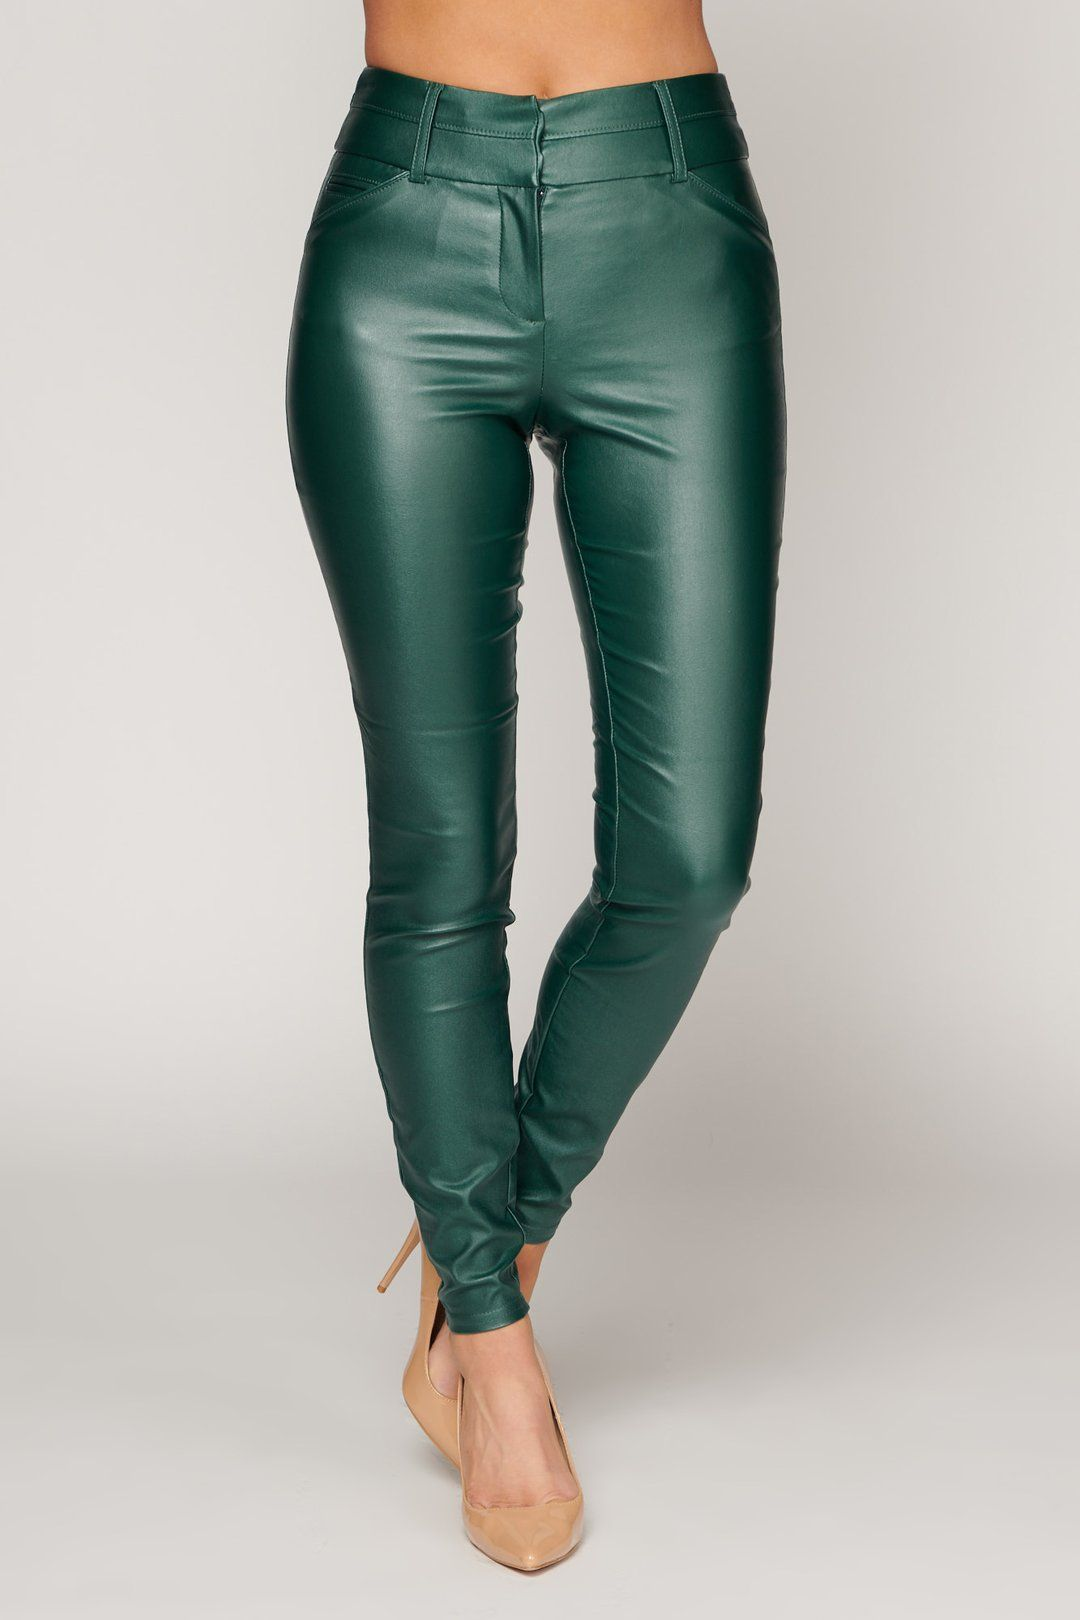 What You Do To Me Faux Leather Pants Hunter Green Leather Pants Faux Leather Pants Leather Pants Outfit